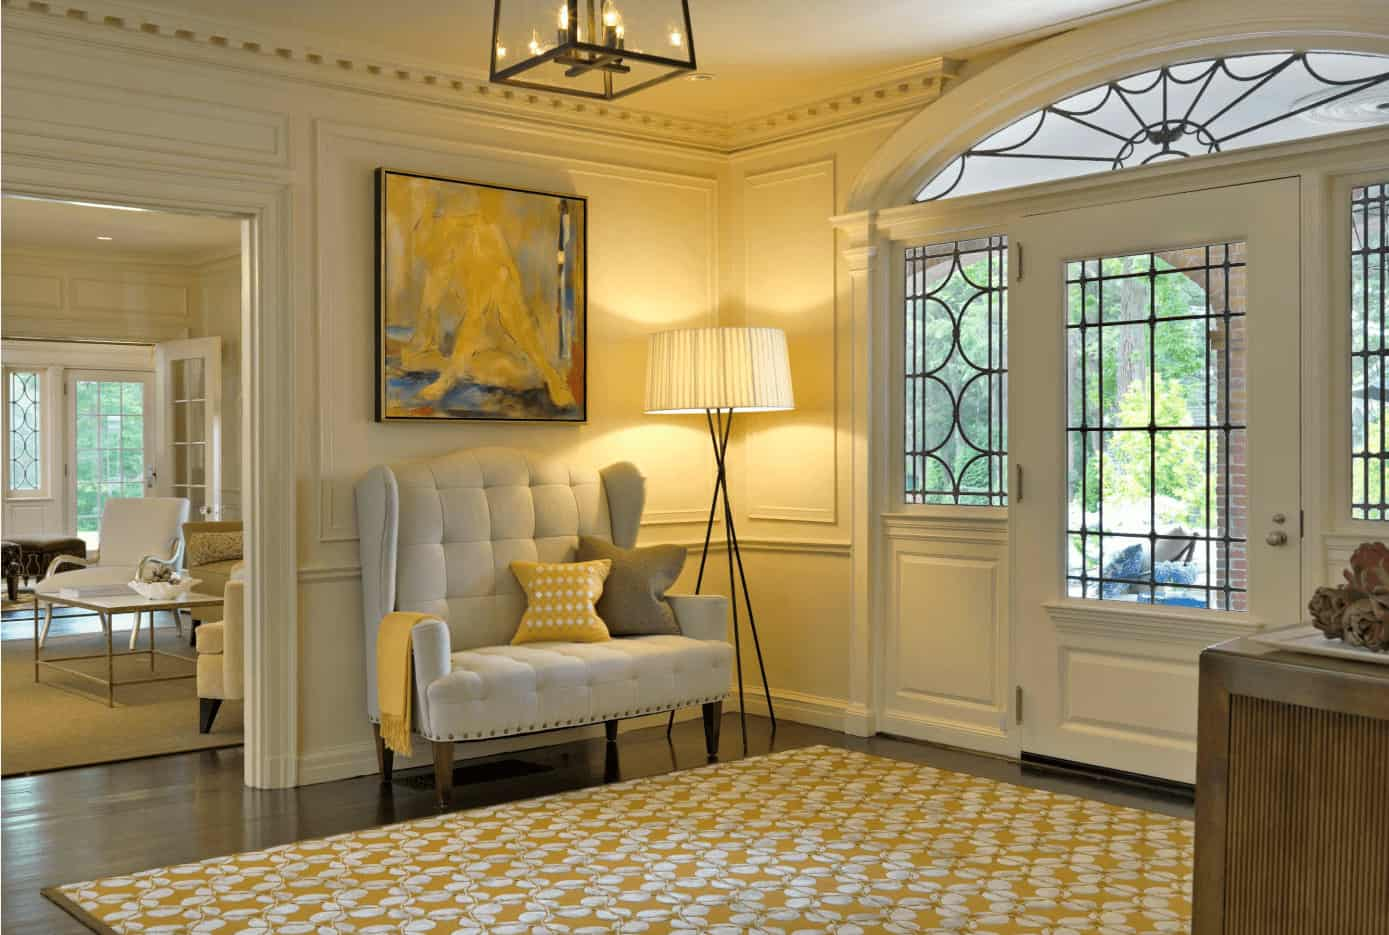 Transitional foyer with glass windows and front door along with hardwood flooring topped by a yellow floral rug. There's a tufted wingback chair in the corner lighted by a floor lamp and caged pendant.